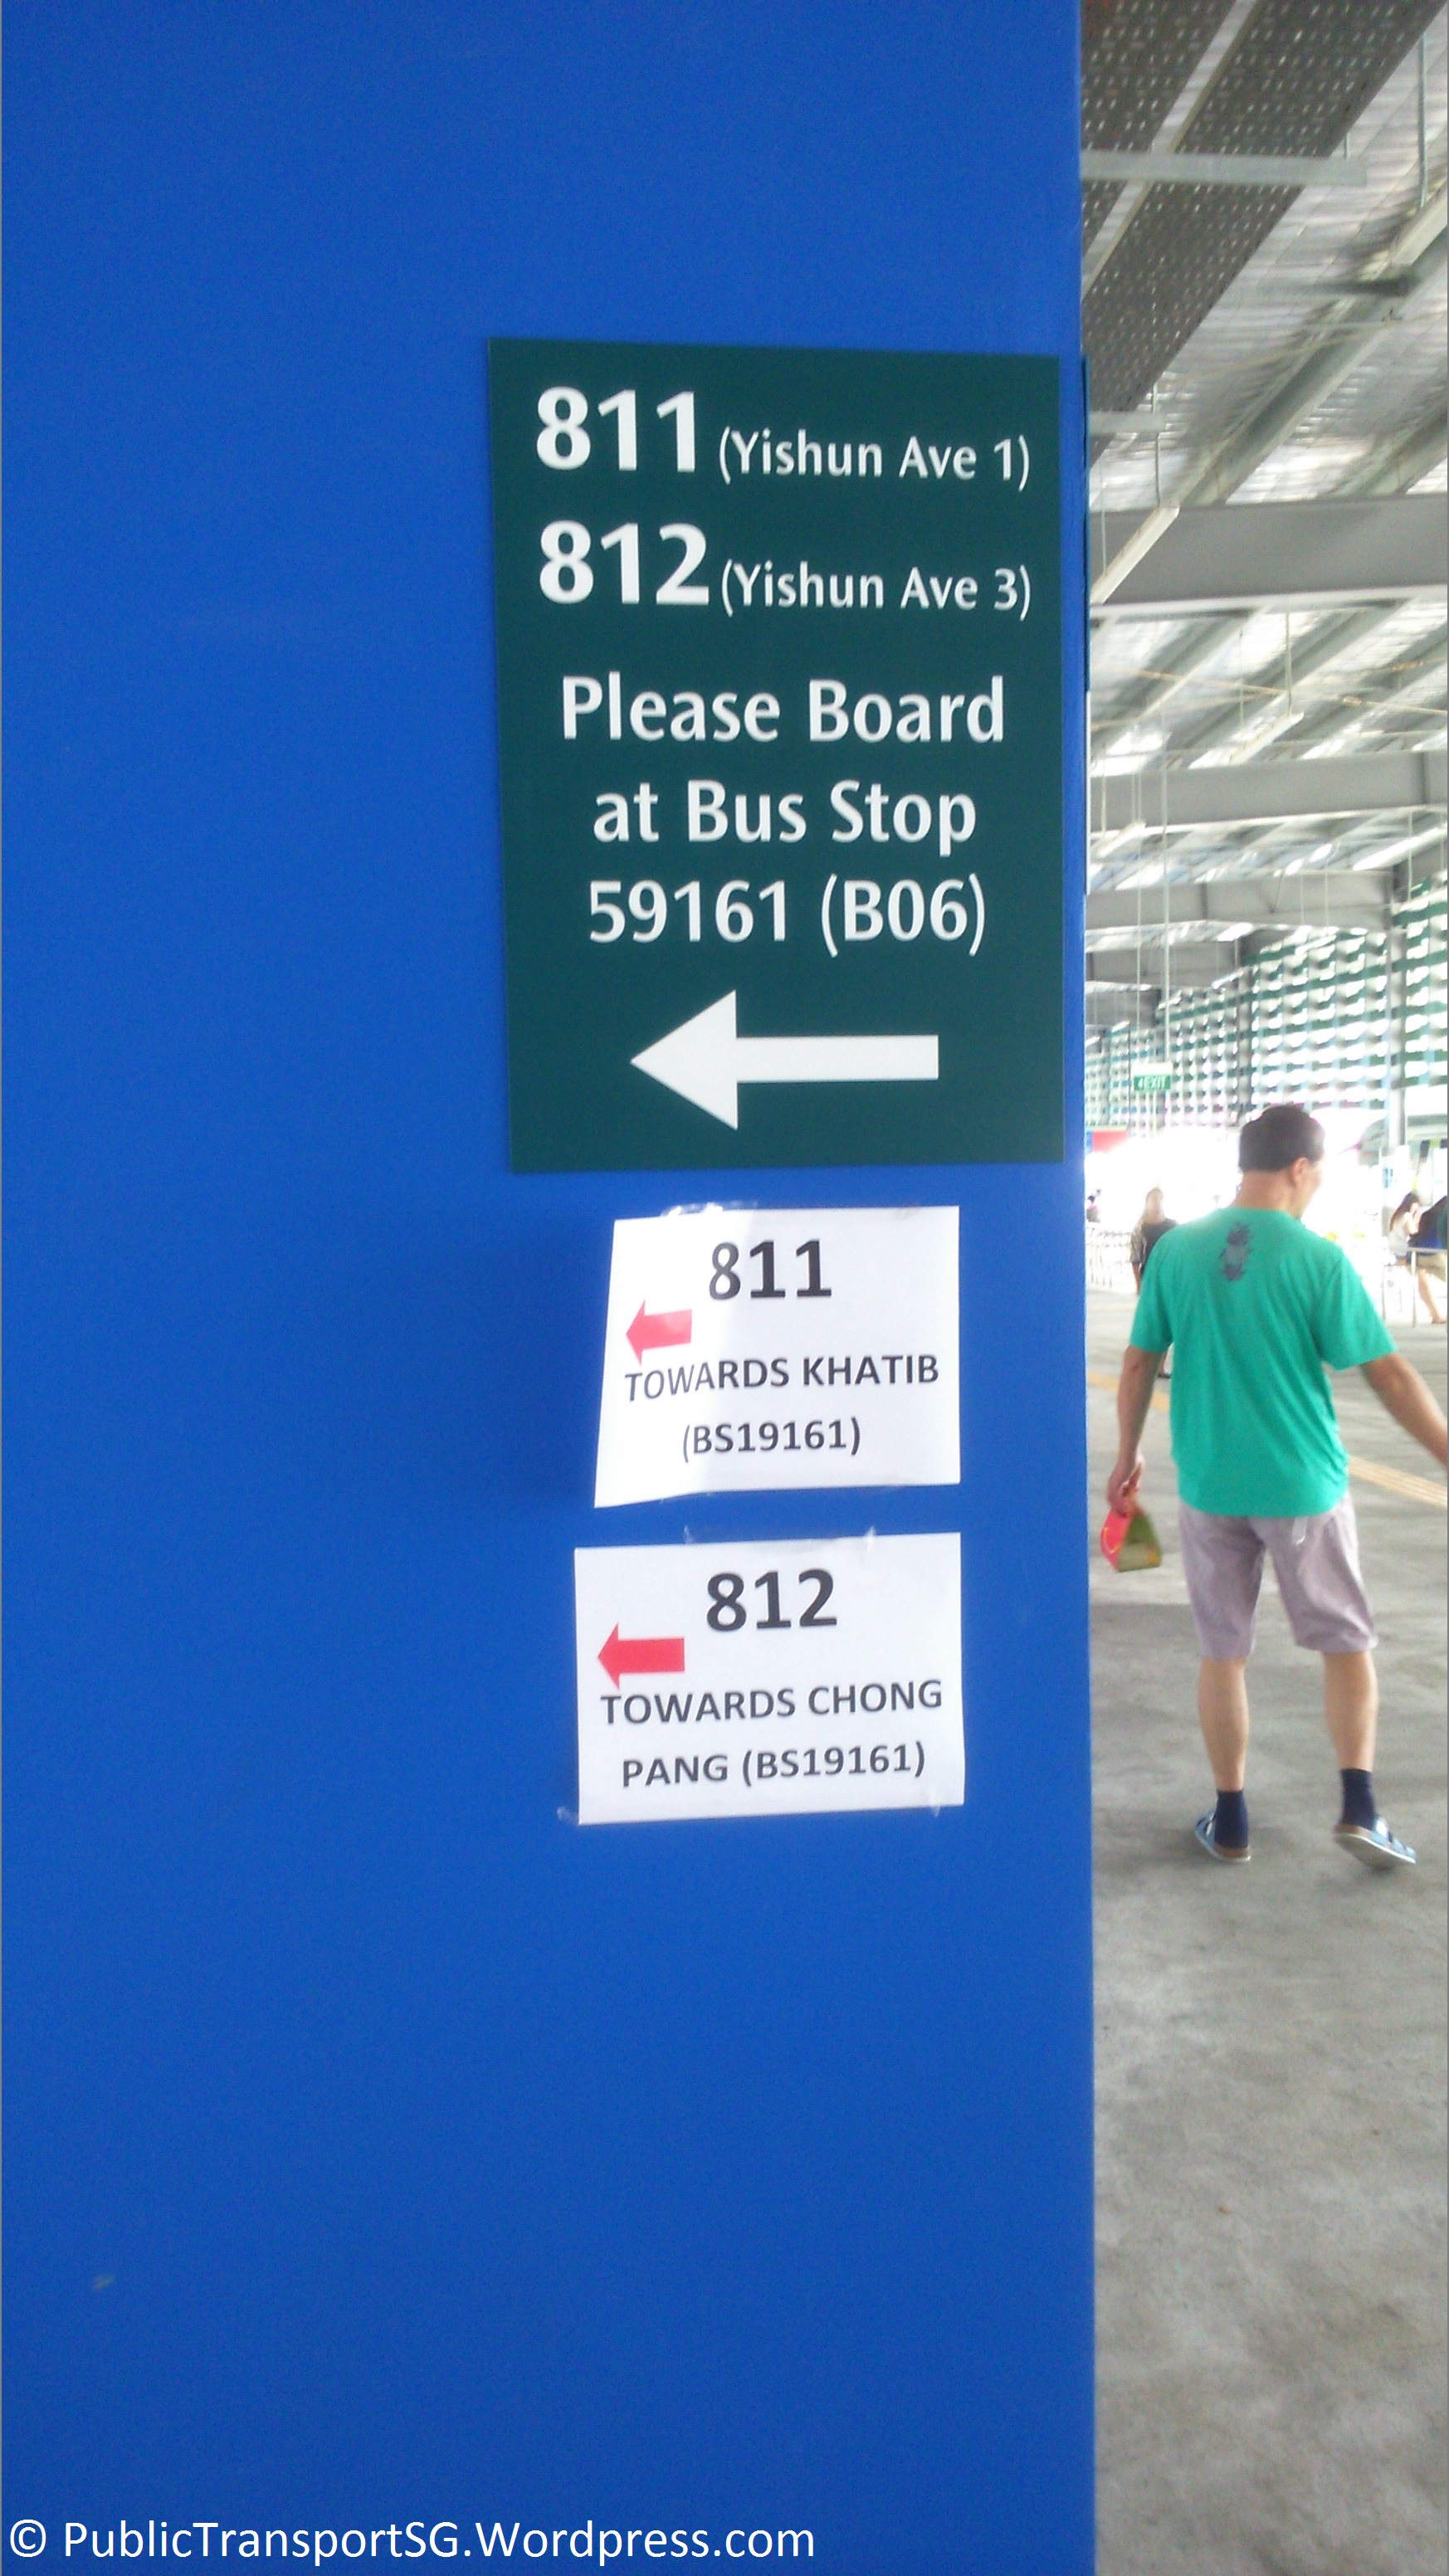 Yishun Temporary Bus Interchange | Public Transport SG